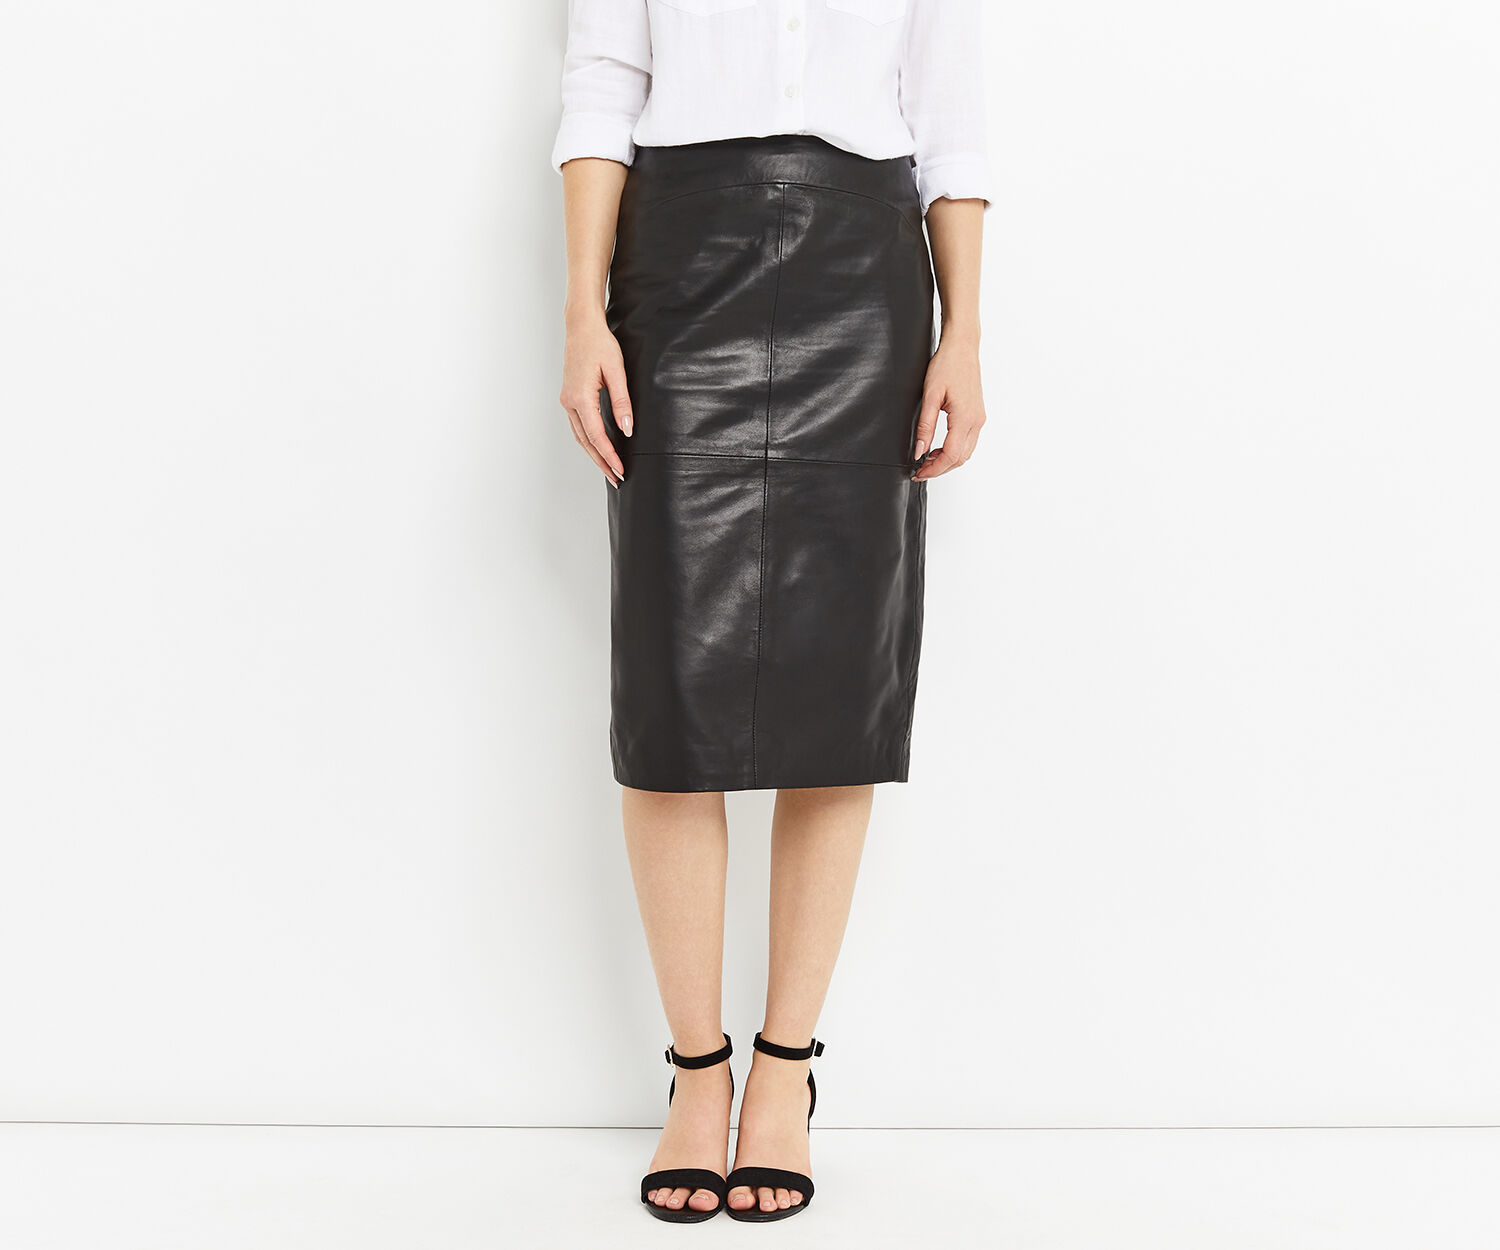 Oasis, LEATHER PENCIL SKIRT Black 1